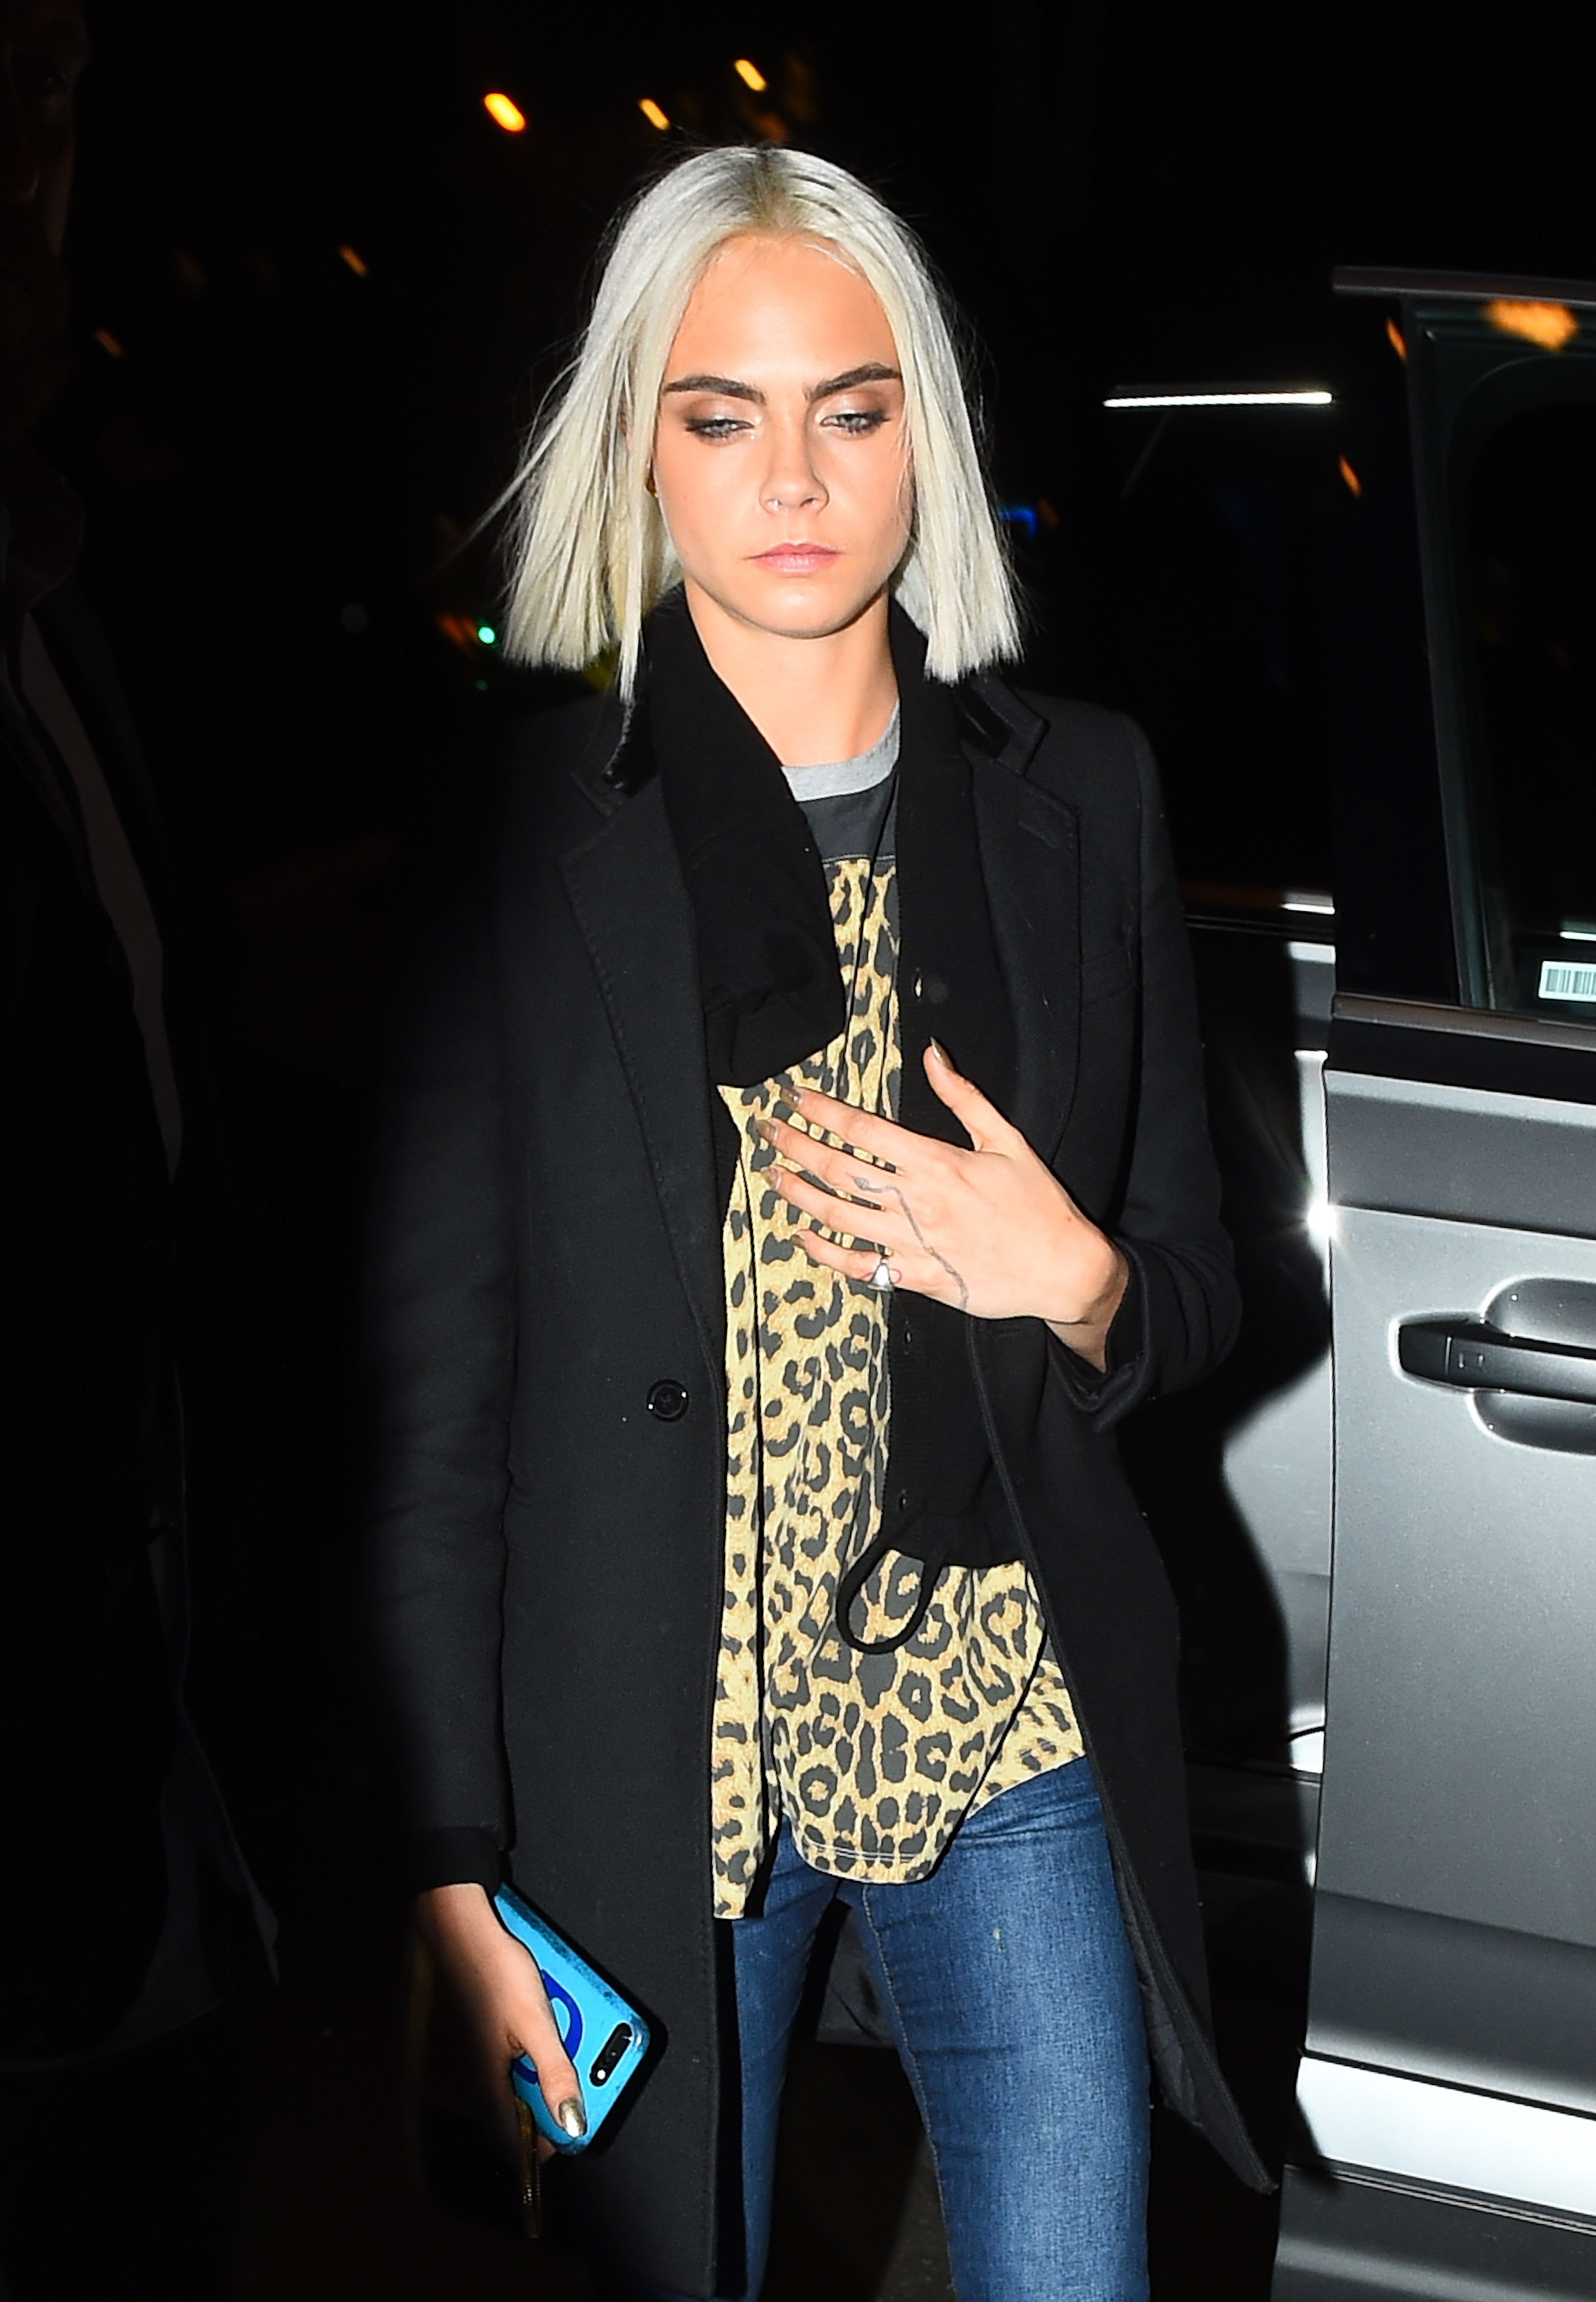 Cara Delevingne Parades Her New Silver Locks In Cool Off-Duty Look During PFW